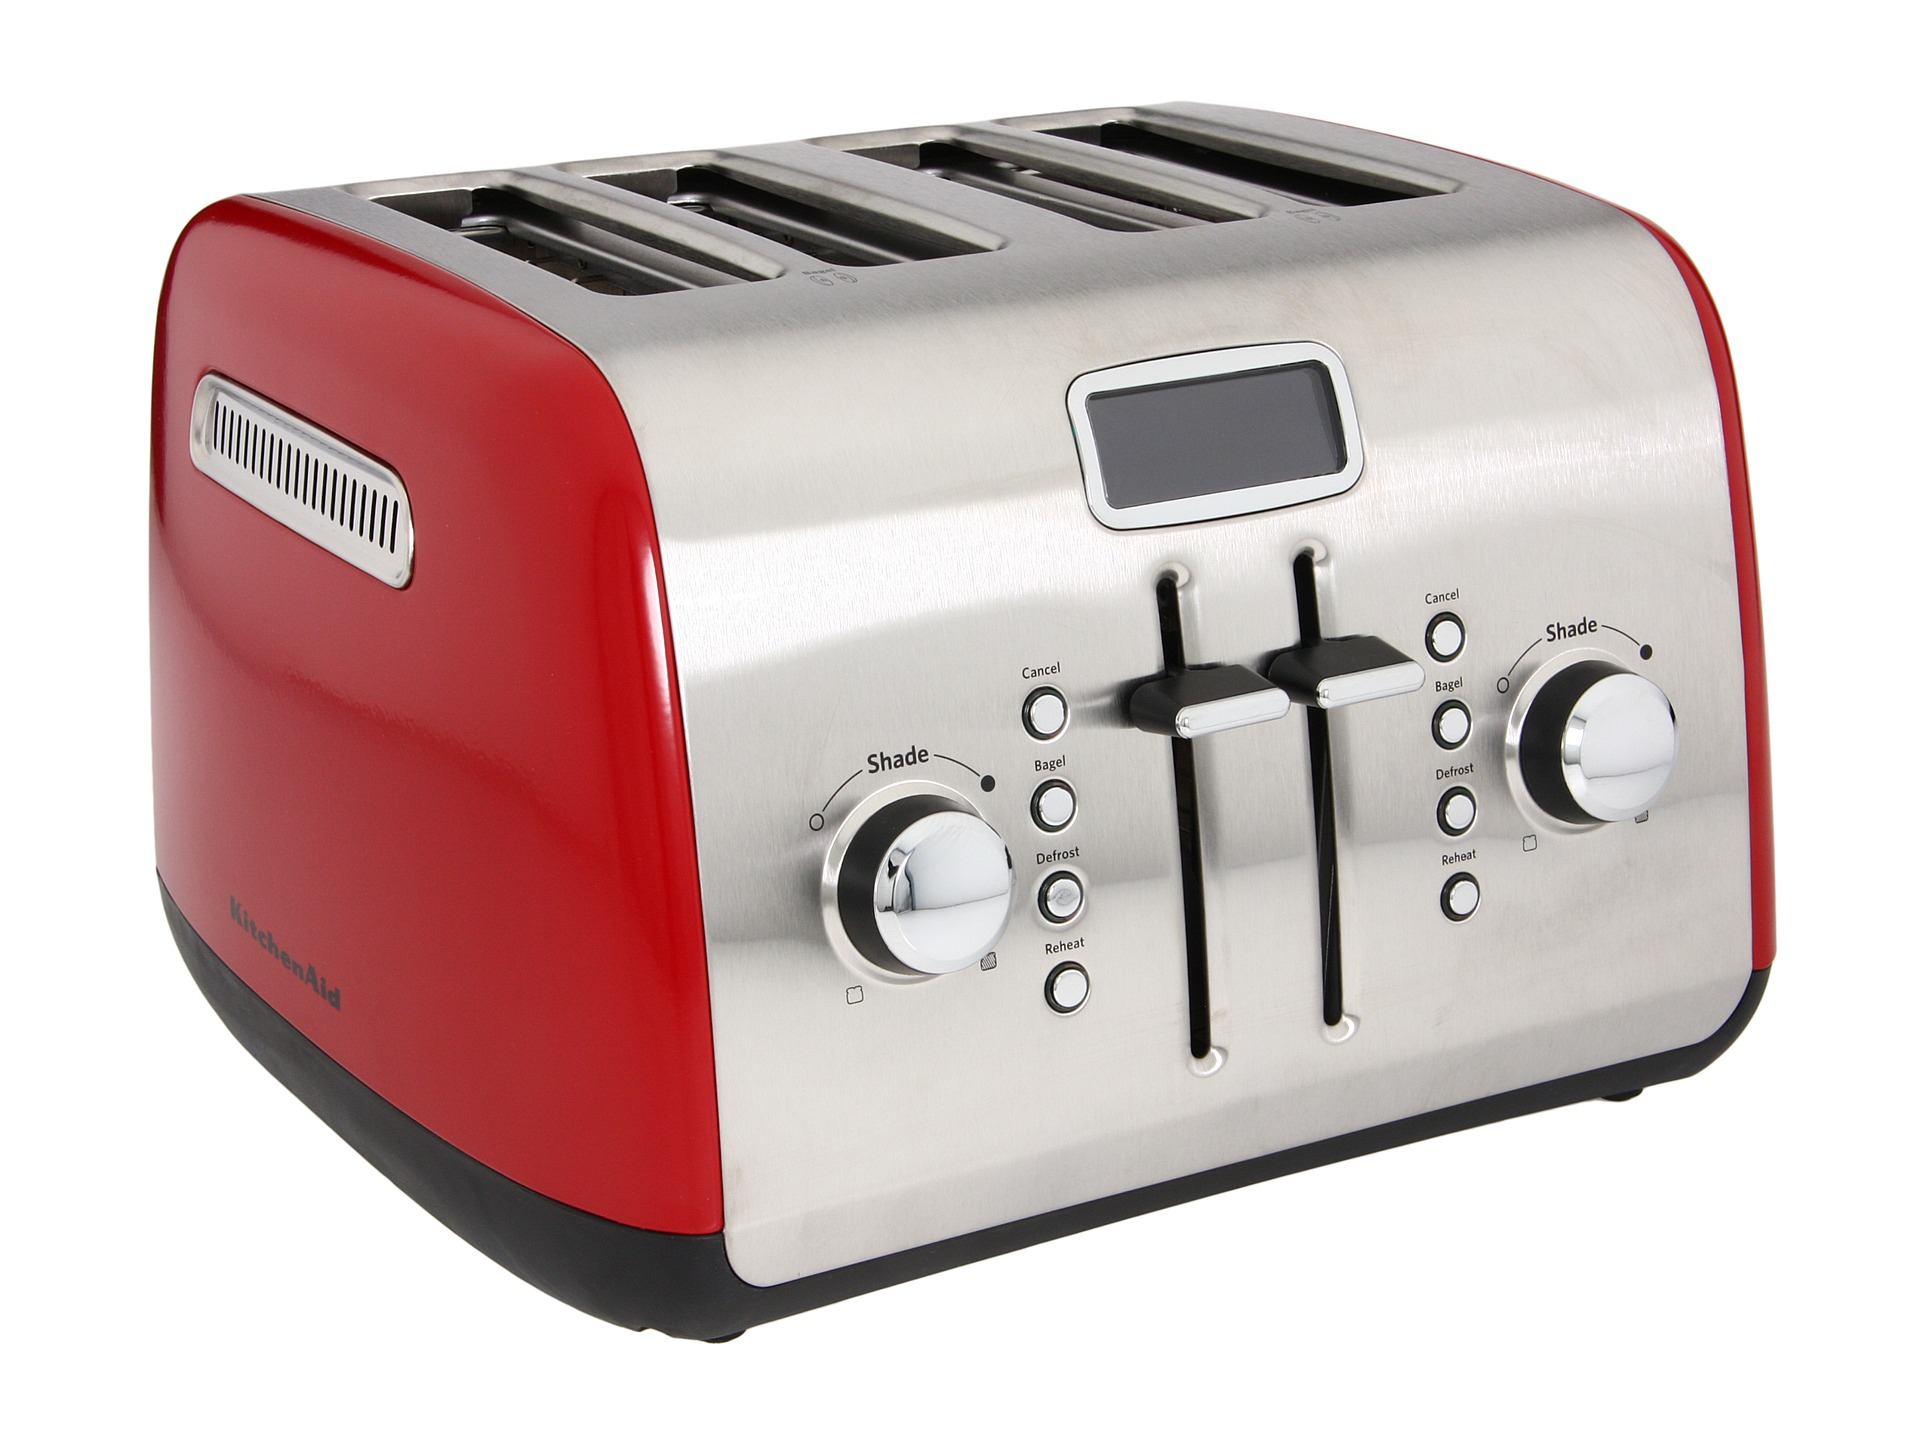 No Results For Kitchenaid Kmt422 4 Slice Digital Toaster Search